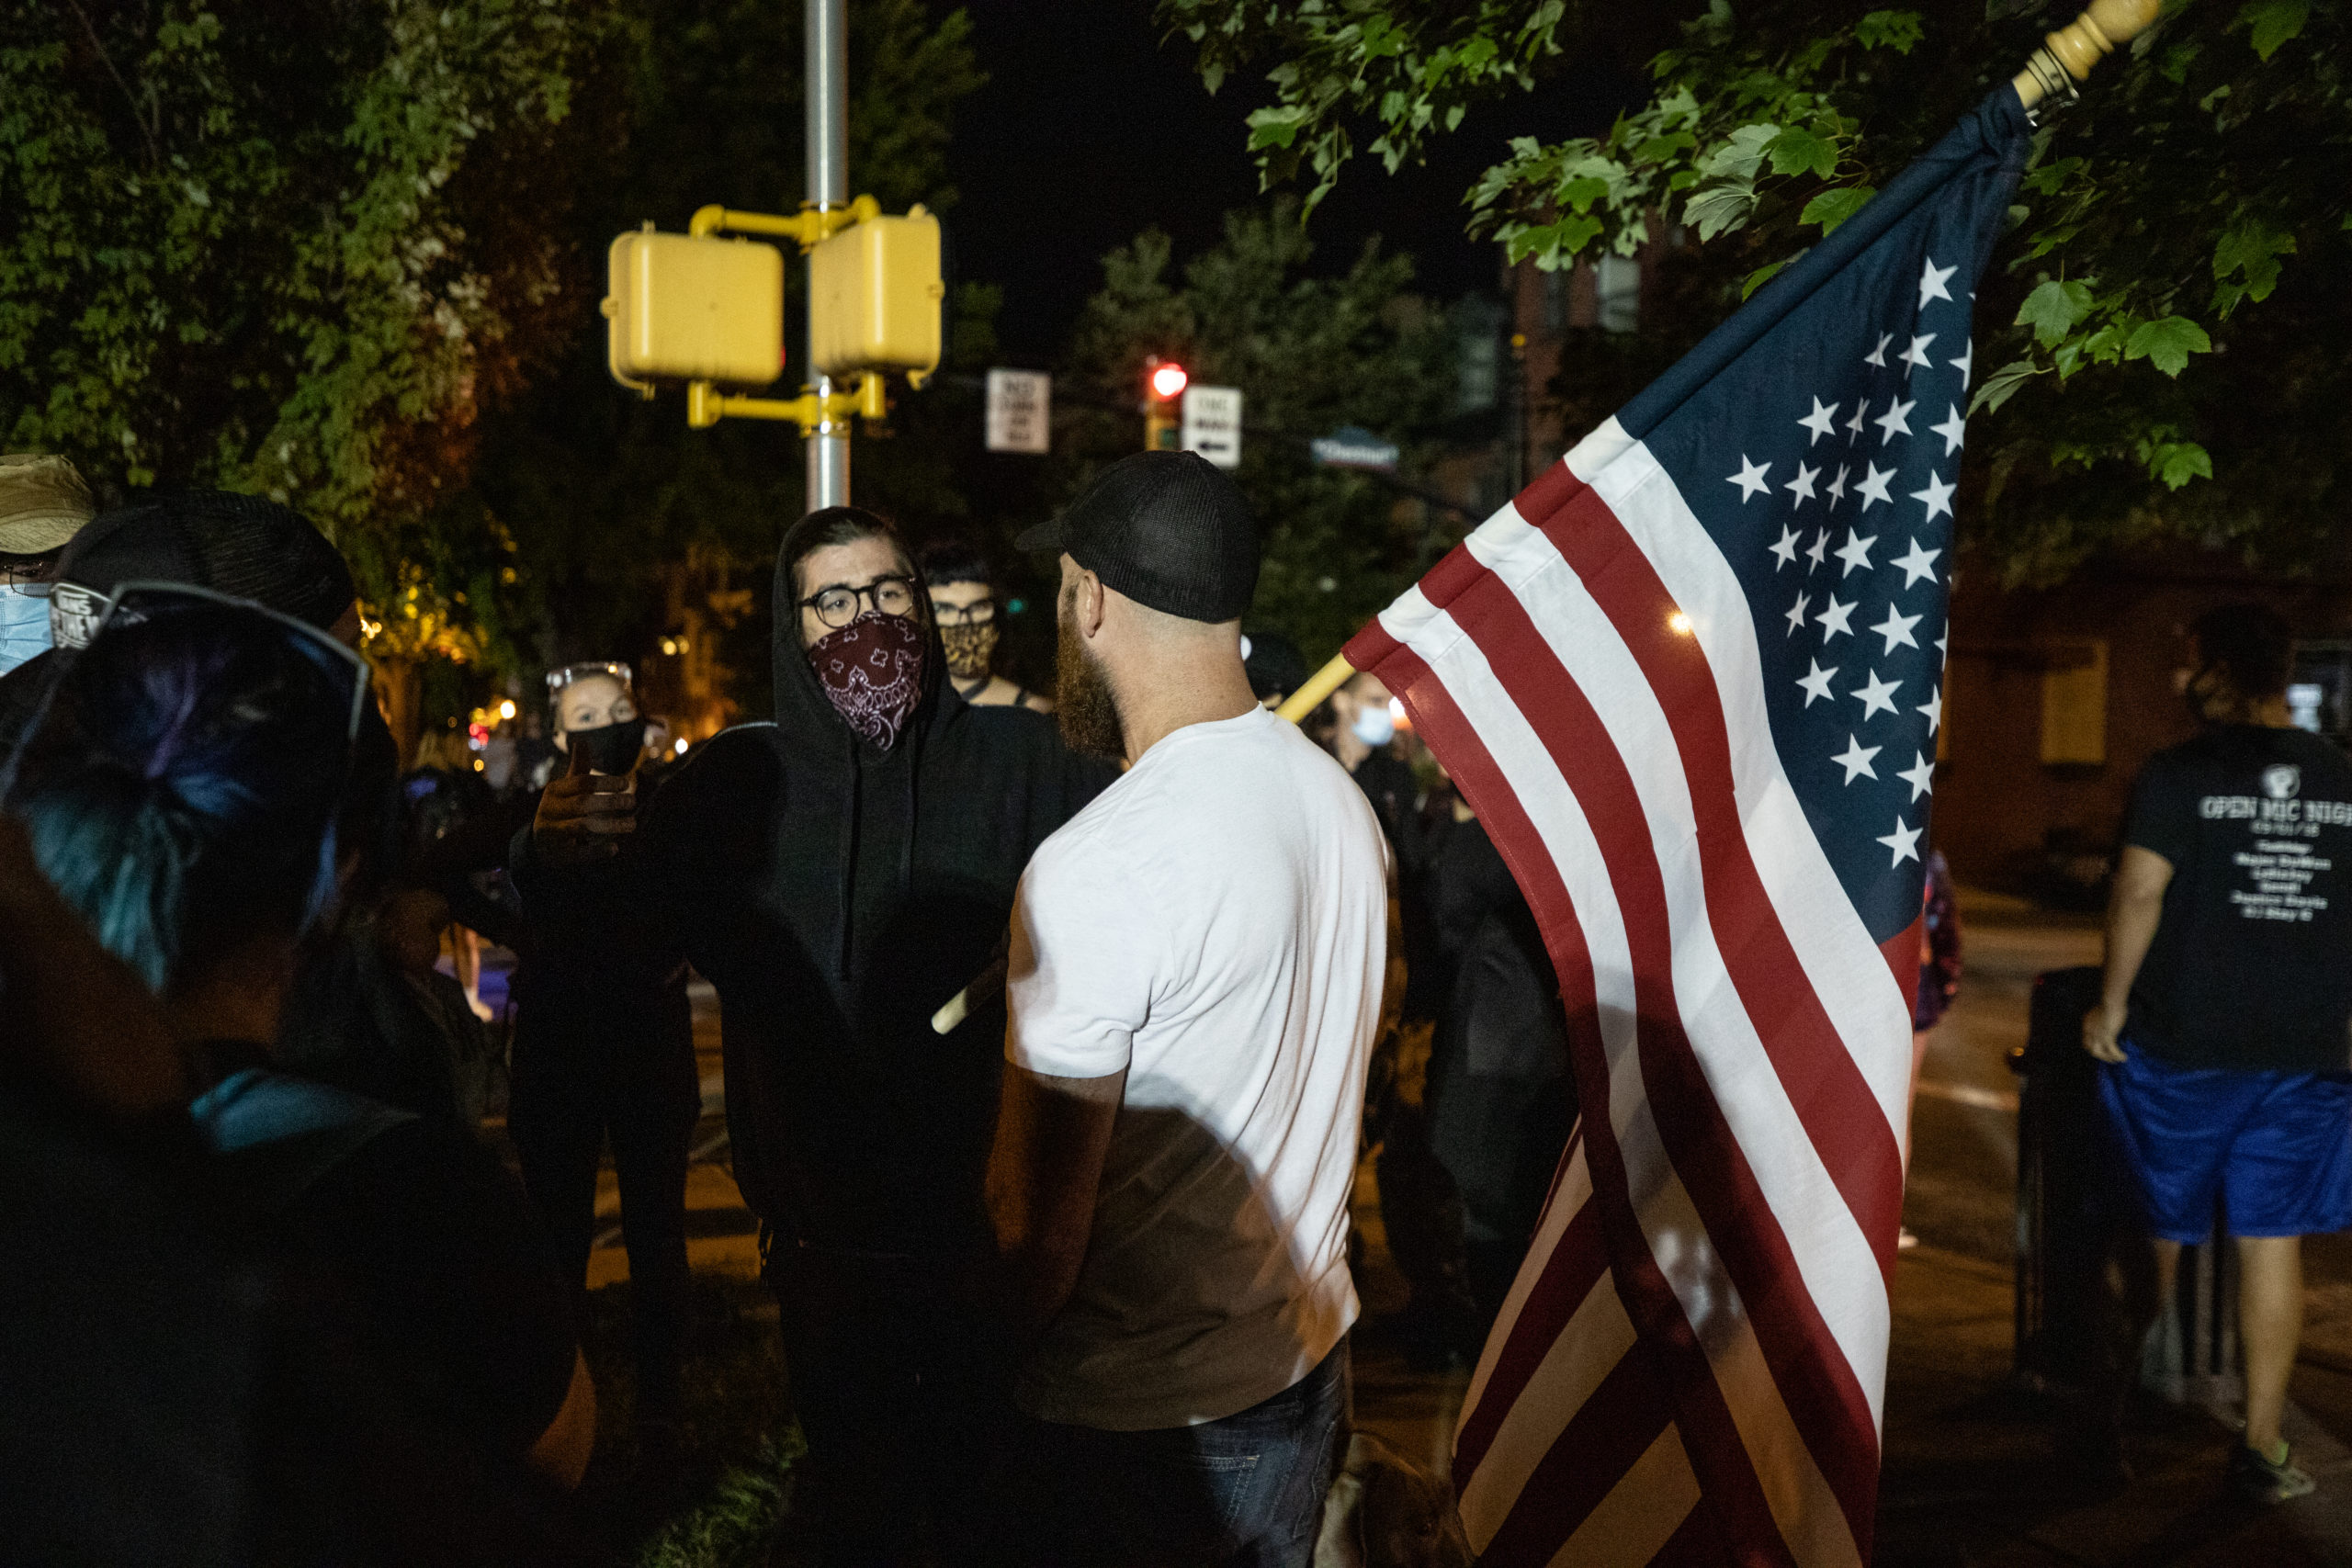 A man with an American flag talked with protesters throughout the night in Lancaster, Philadelphia on Sept. 14, 2020. (Photo - Kaylee Greenlee / Daily Caller News Foundation)